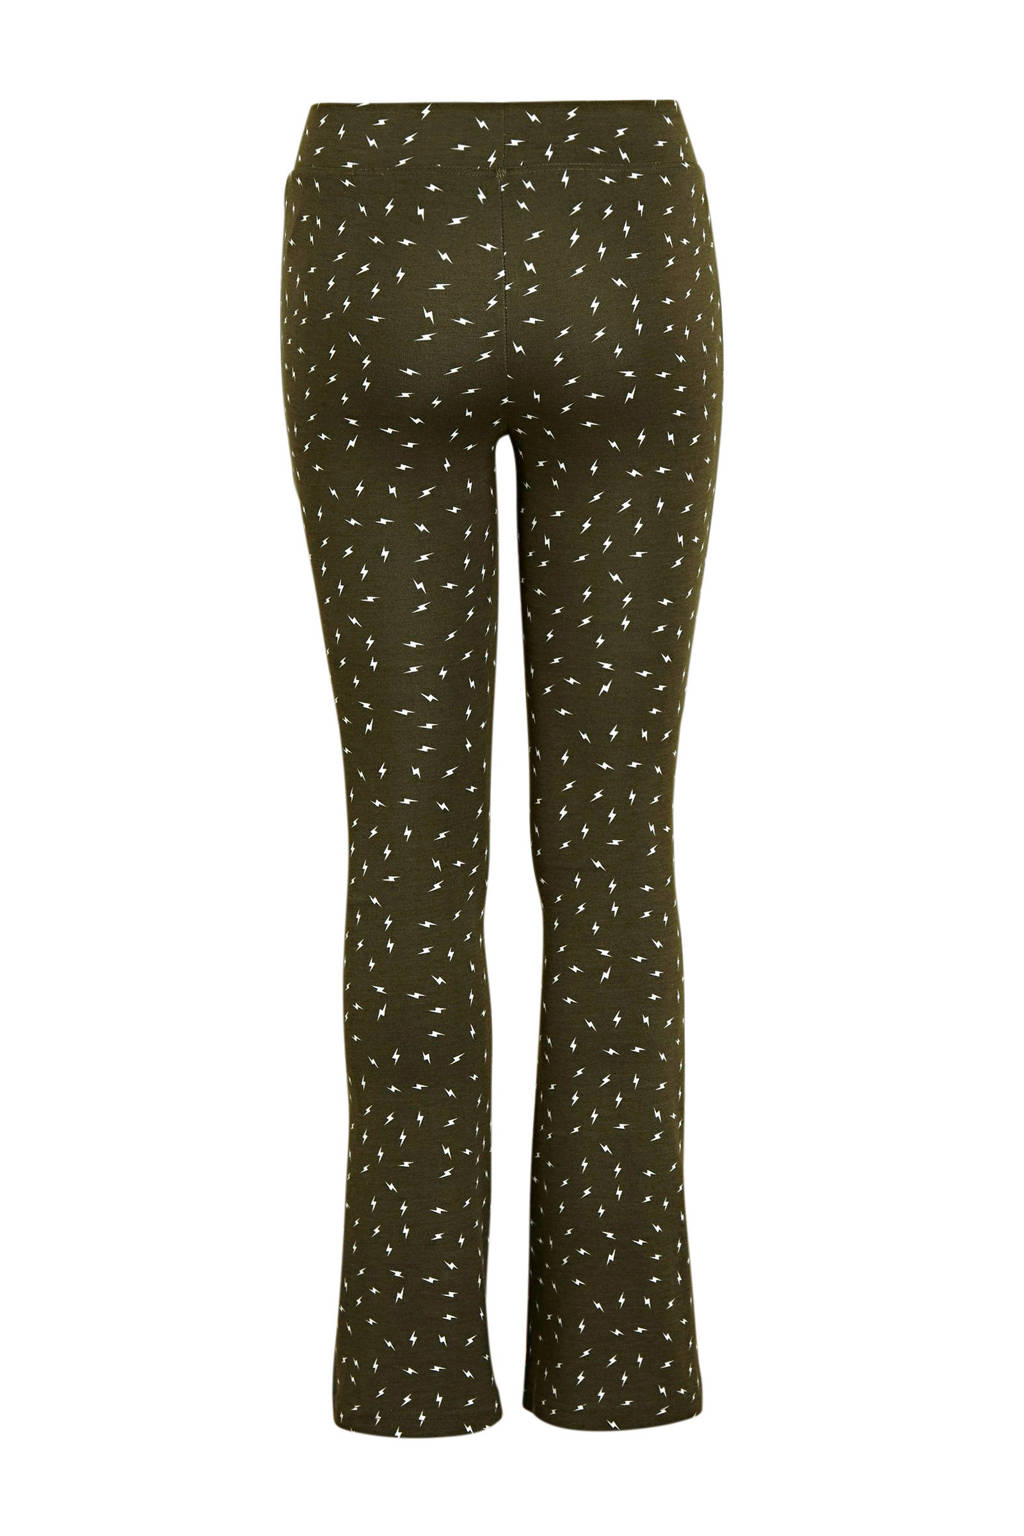 KIDS ONLY flared broek Paige met all over print groen, Groen